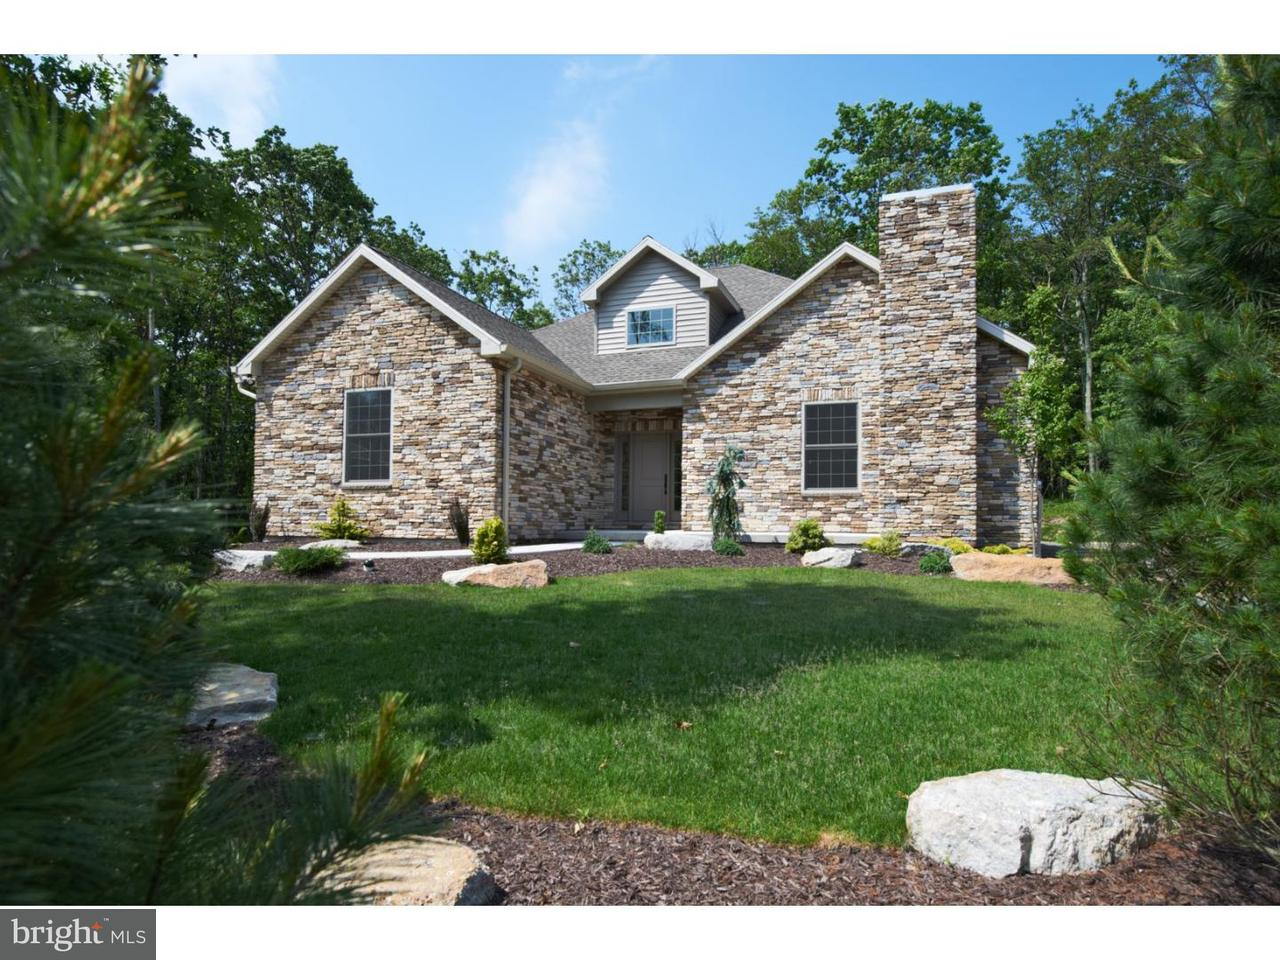 Single Family Home for Sale at 345 TURNBERRY Lane Hazle Township, Pennsylvania 18202 United States